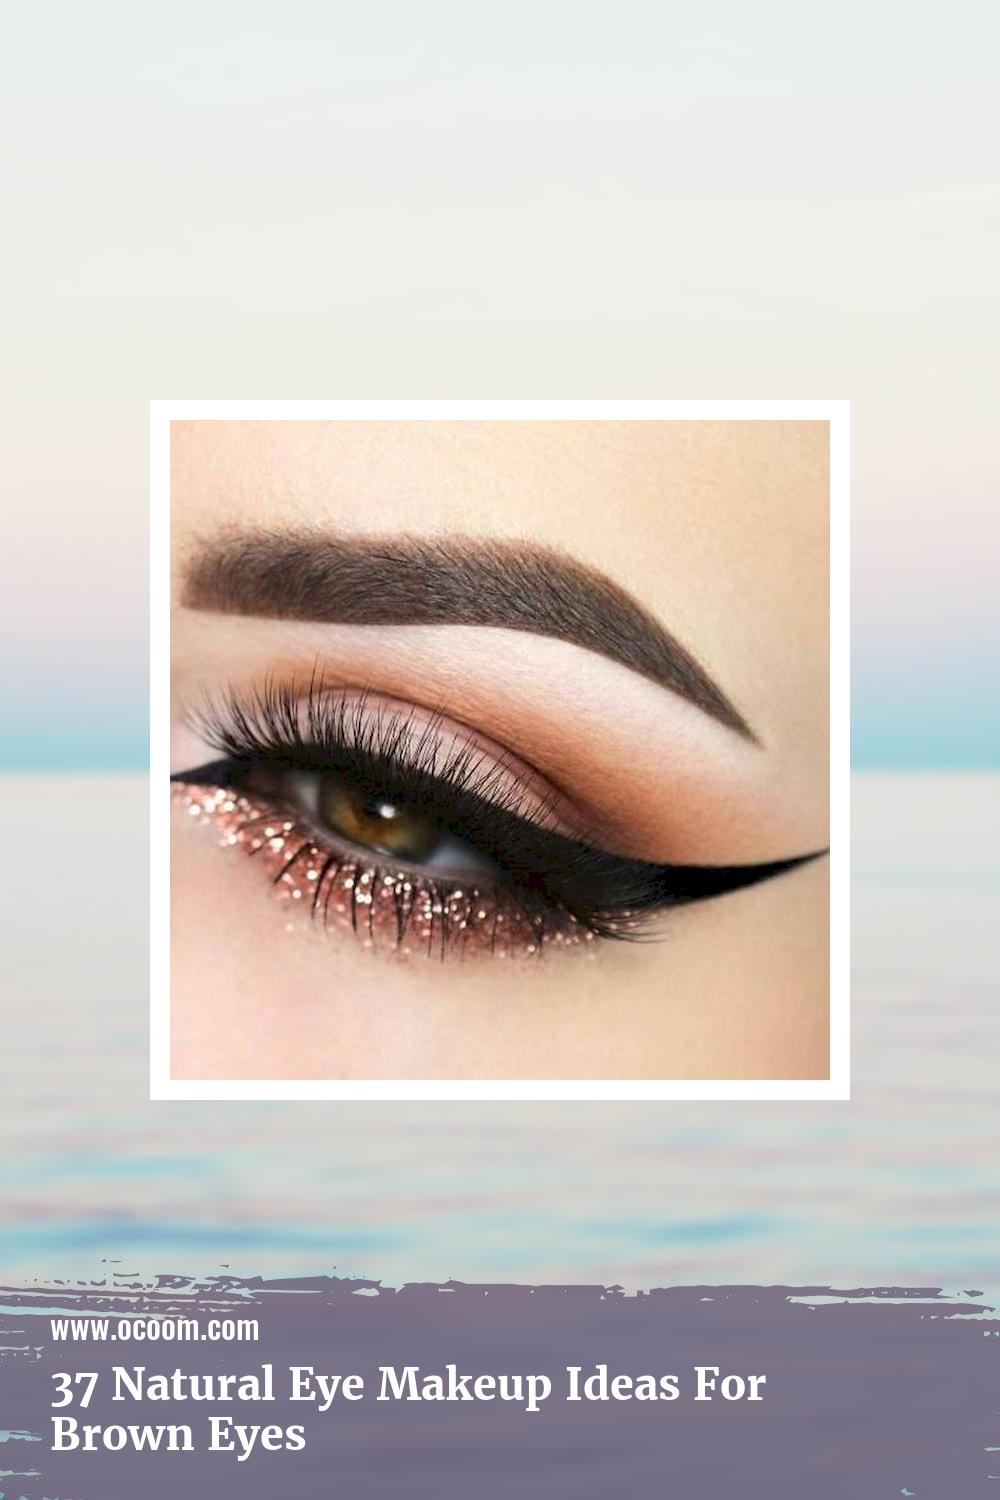 37 Natural Eye Makeup Ideas For Brown Eyes 6